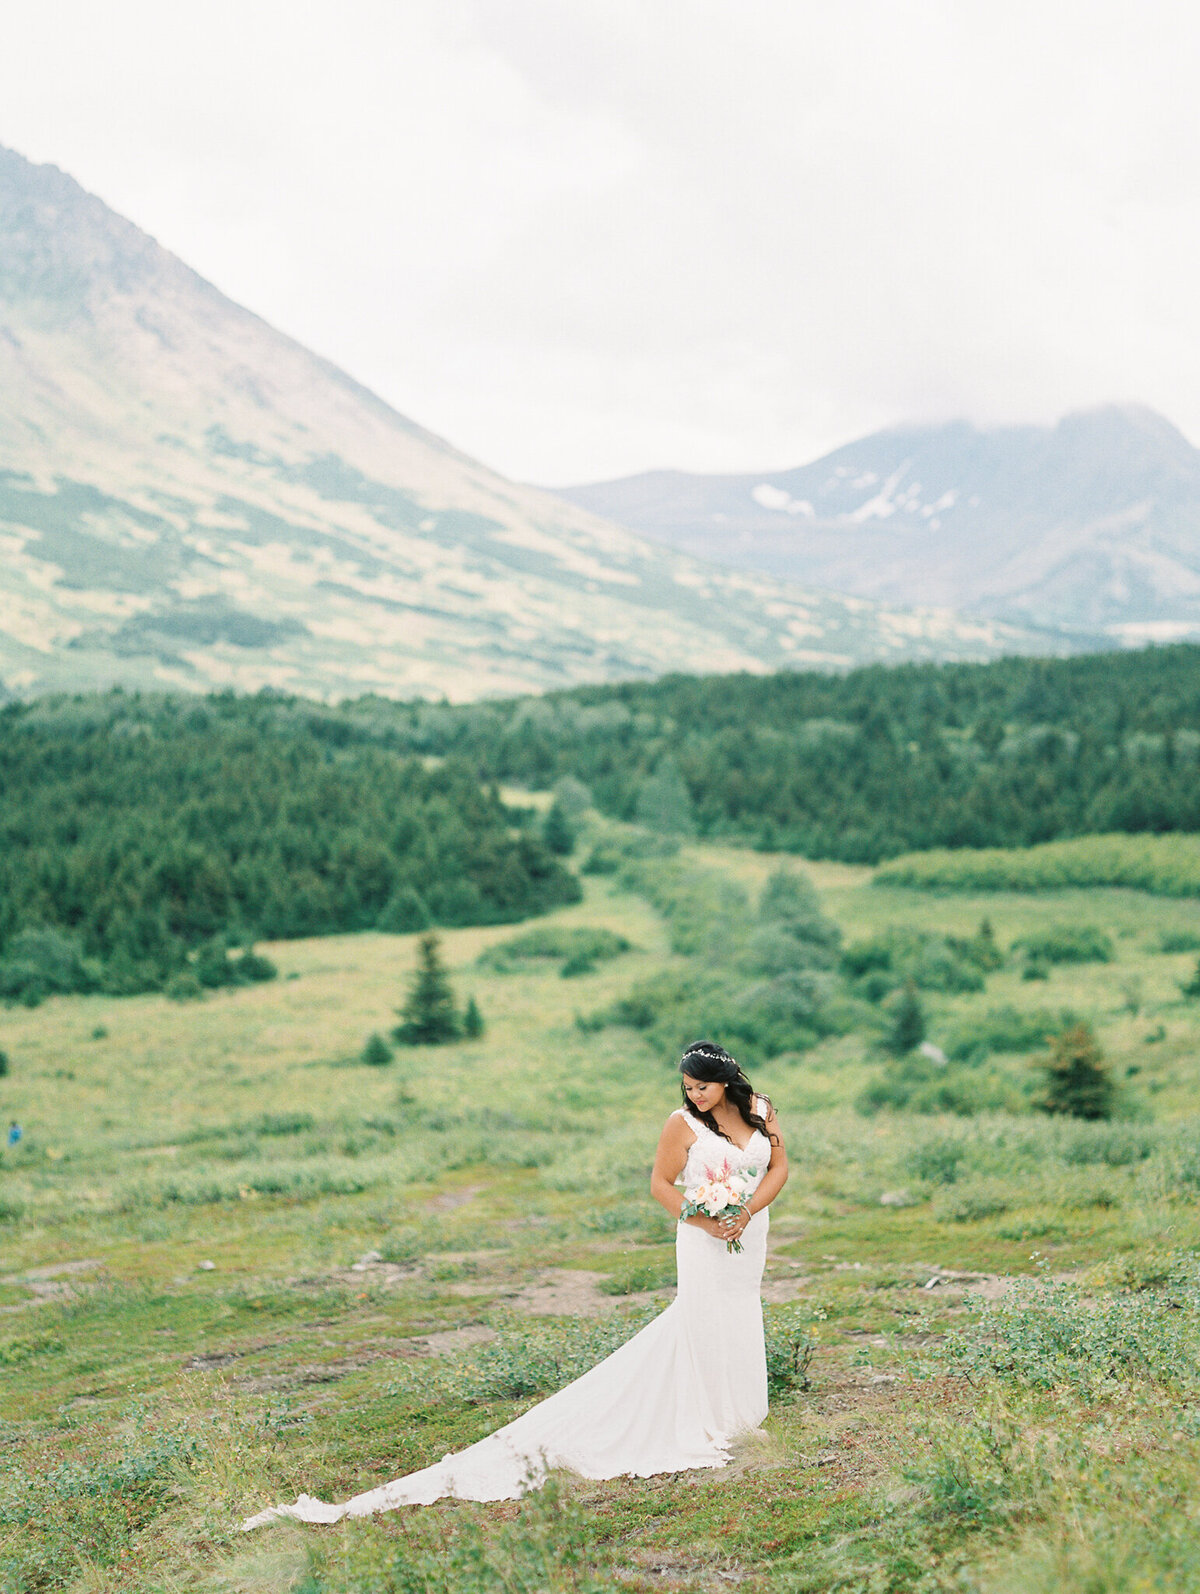 Flattop bride film wedding photographer